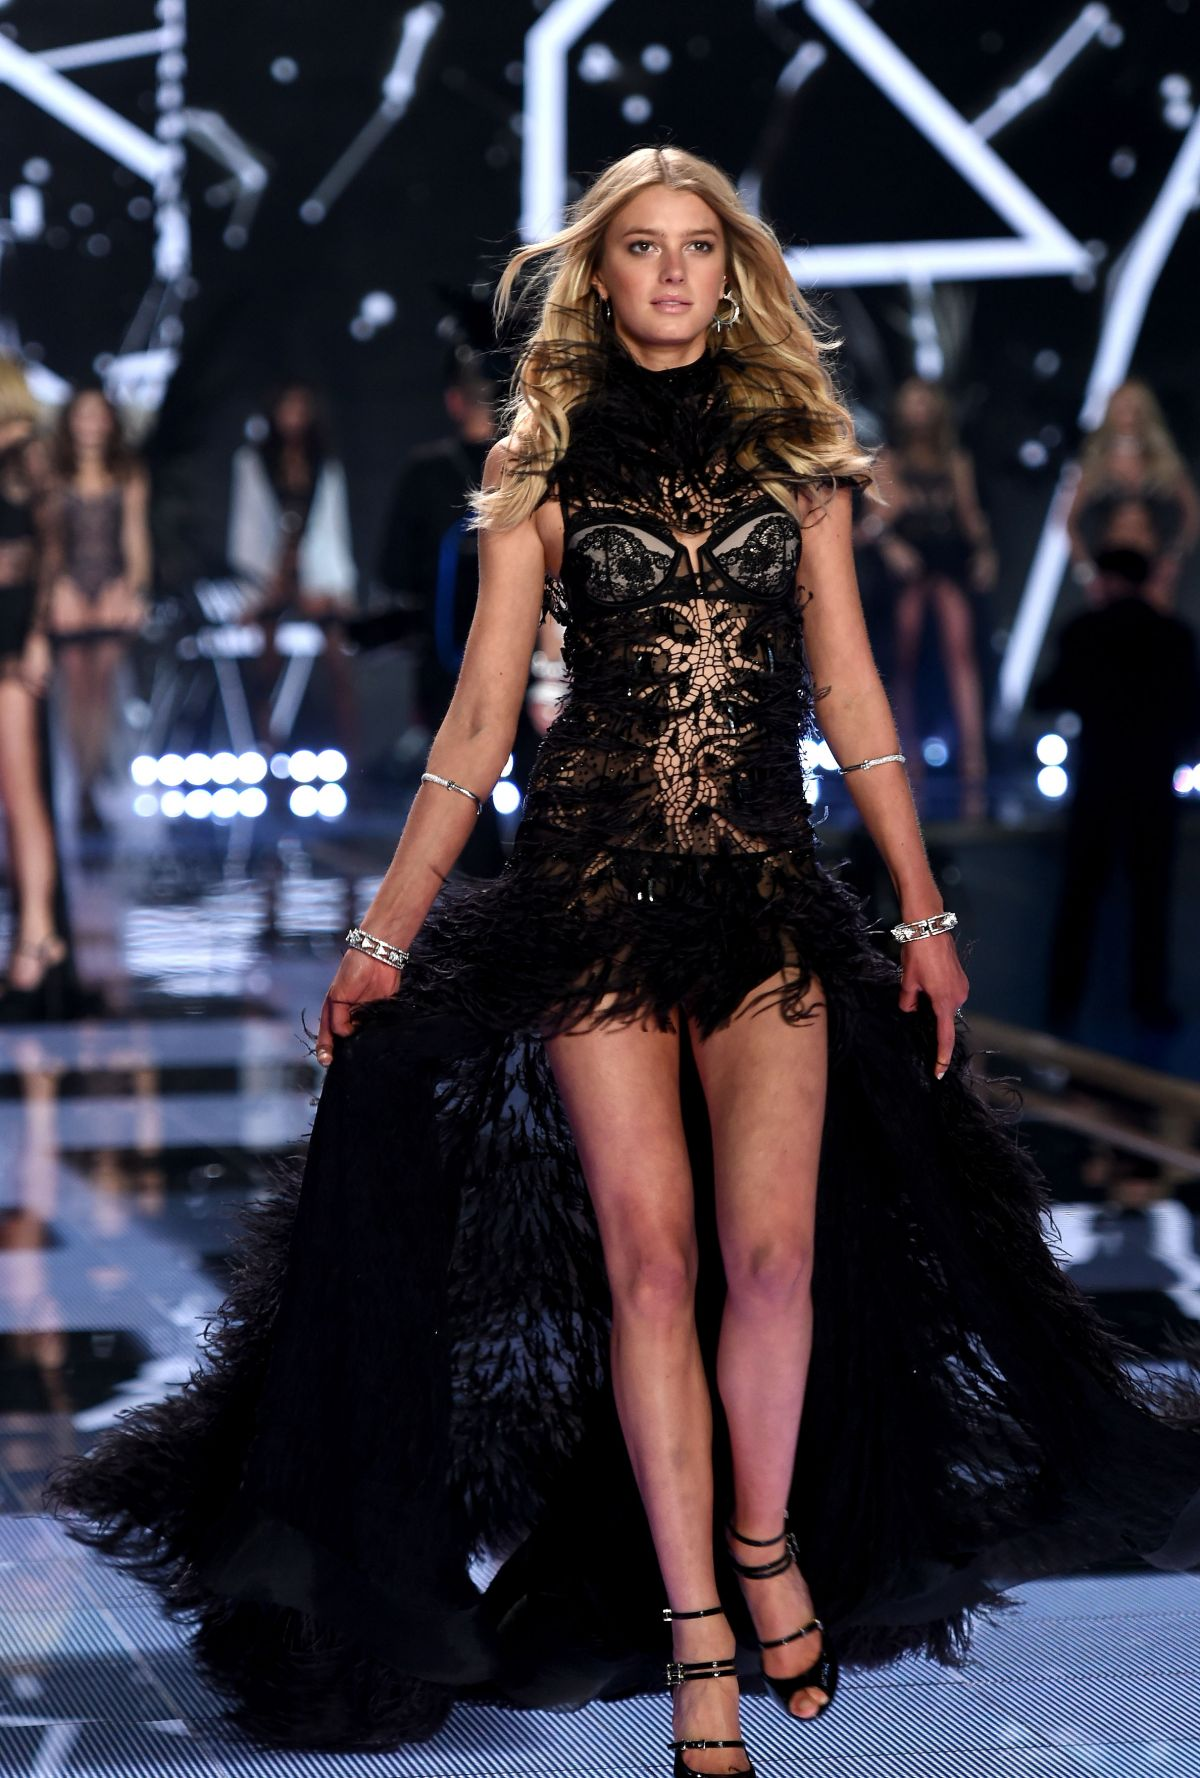 Sigrid agren at 2014 victoria 39 s secret fashion show for Runway fashion show video